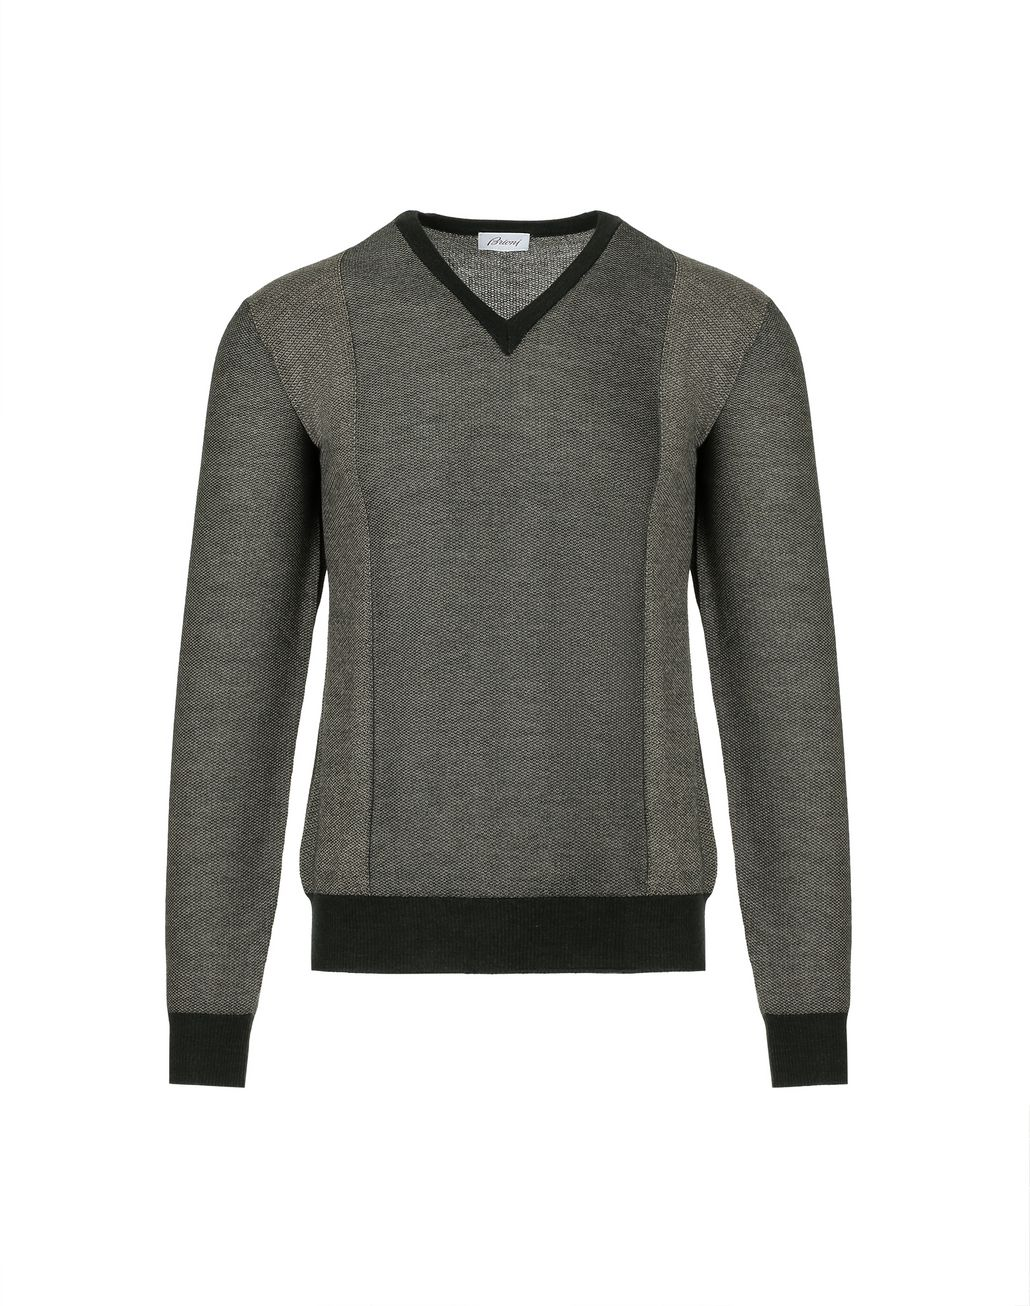 BRIONI Thyme Green and Sand V-neck Micro Jacquard Sweater   Knitwear [*** pickupInStoreShippingNotGuaranteed_info ***] f